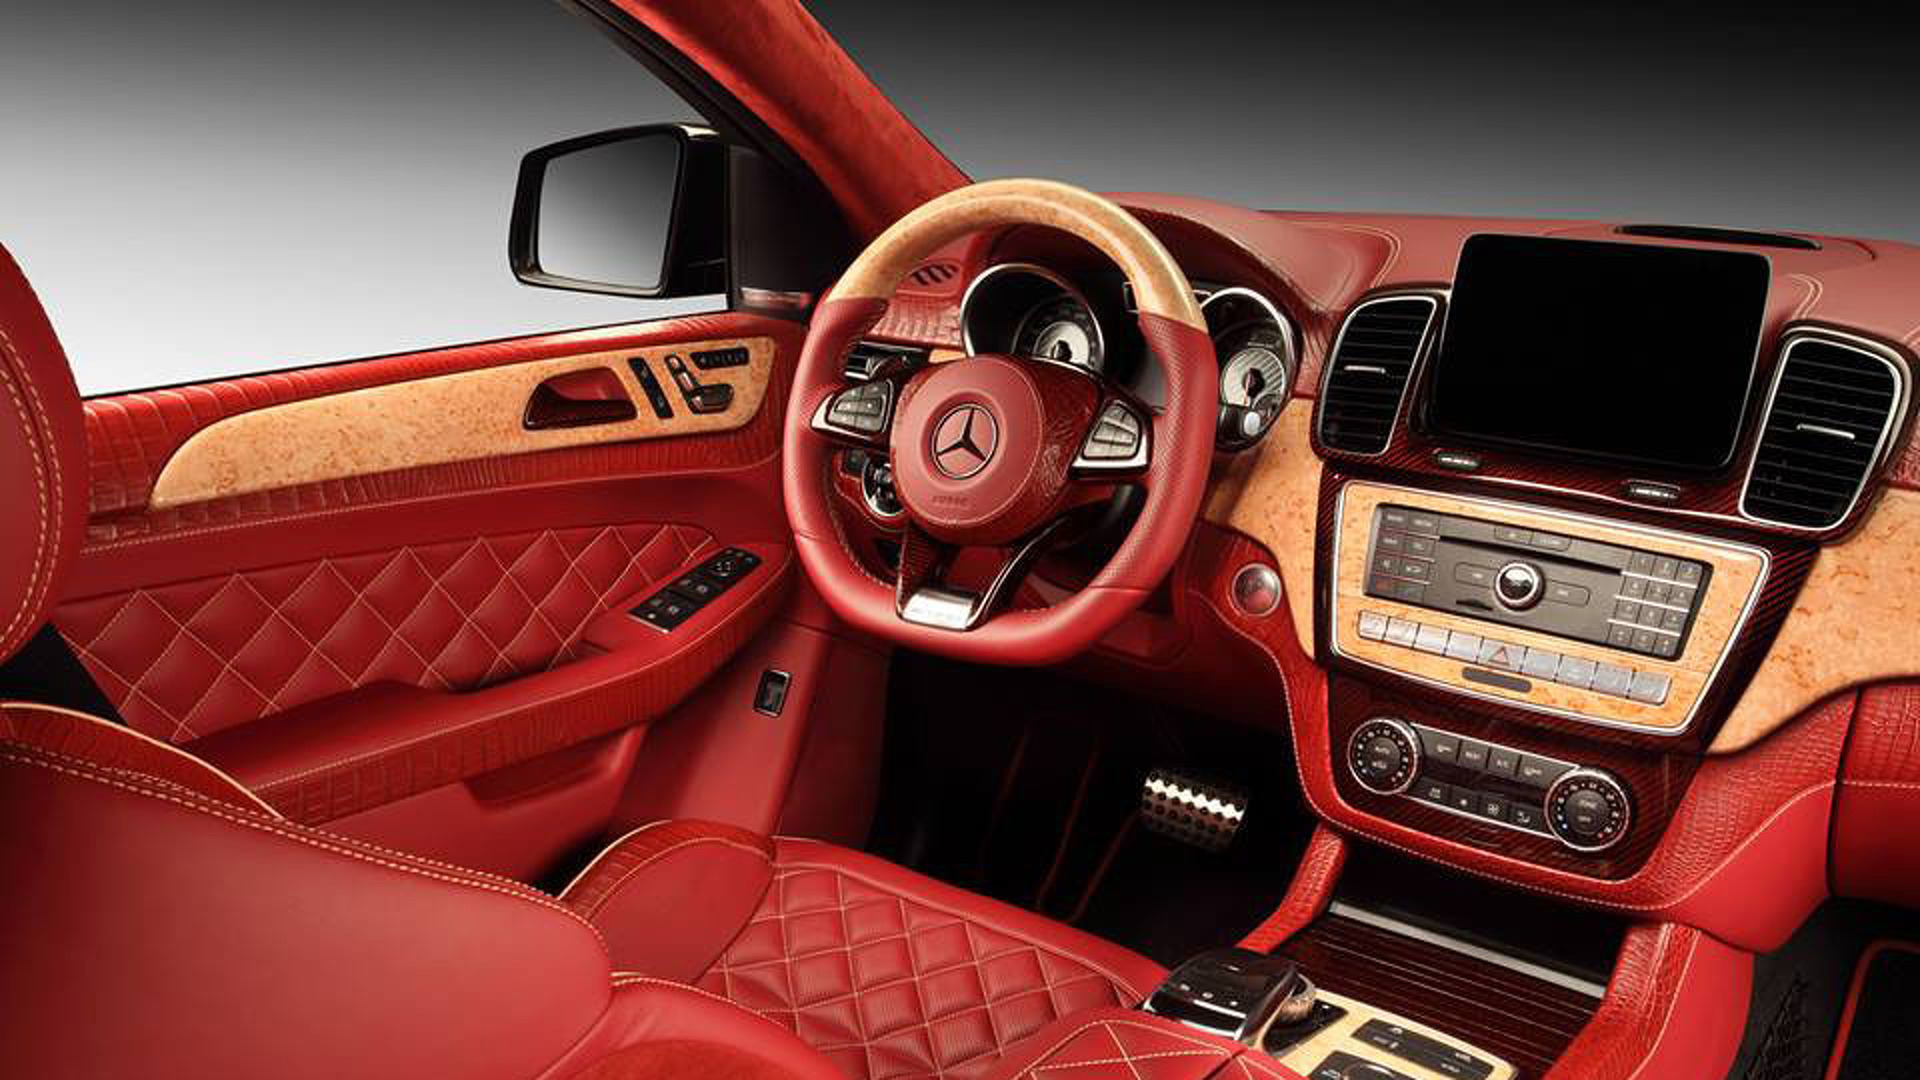 Mercedes Benz Gle Coupe Red Crocodile Interior By Topcar Motor1